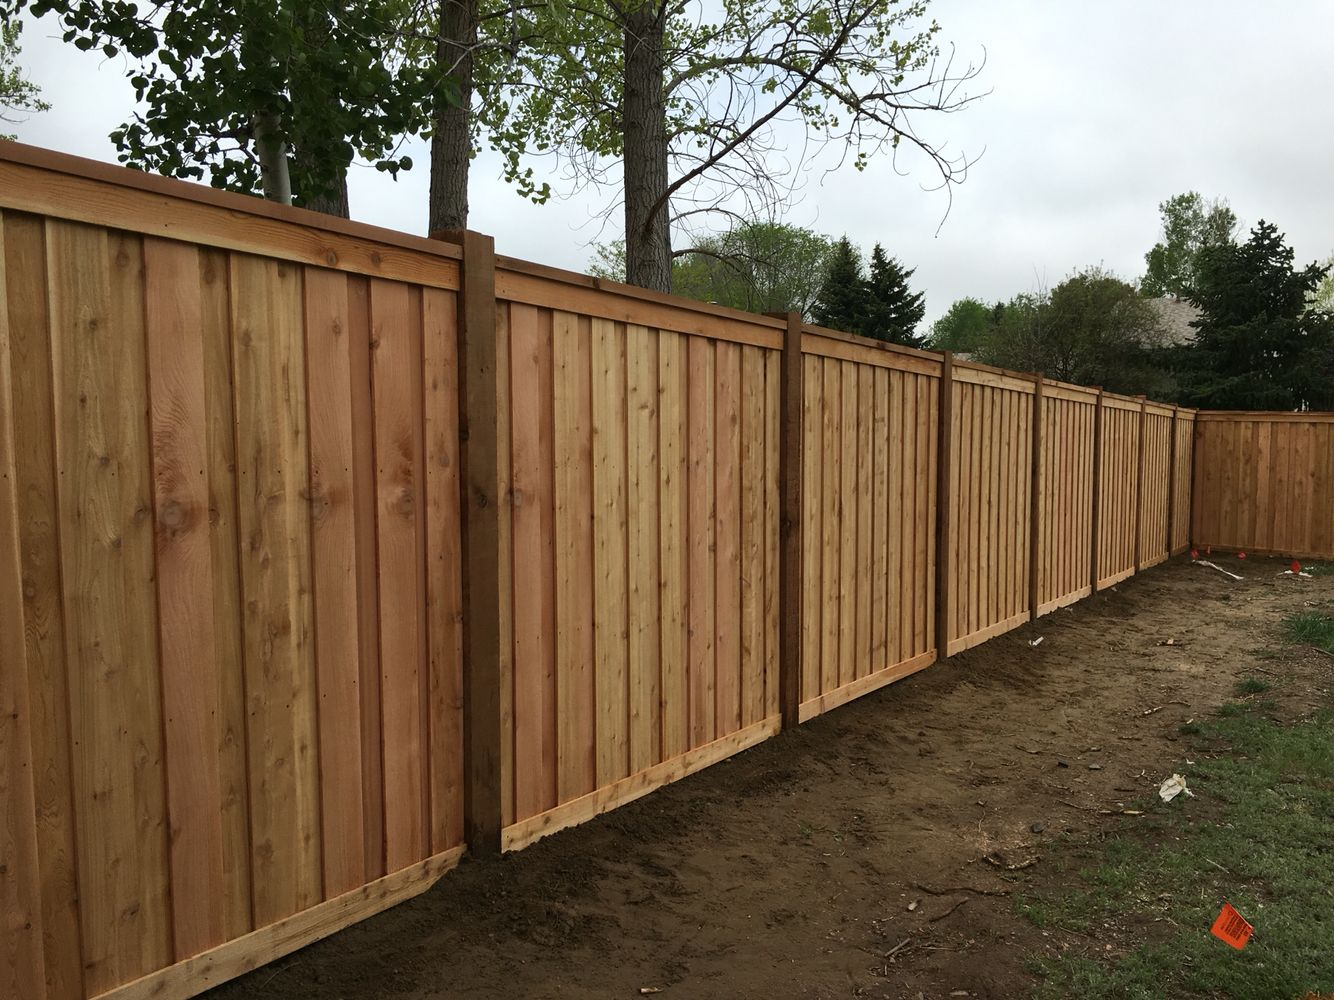 7 tall cedar privacy fence with 6x6 posts 2x6 top cap 6 7 tall cedar privacy fence with 6x6 posts 2x6 top cap 6 baanklon Choice Image